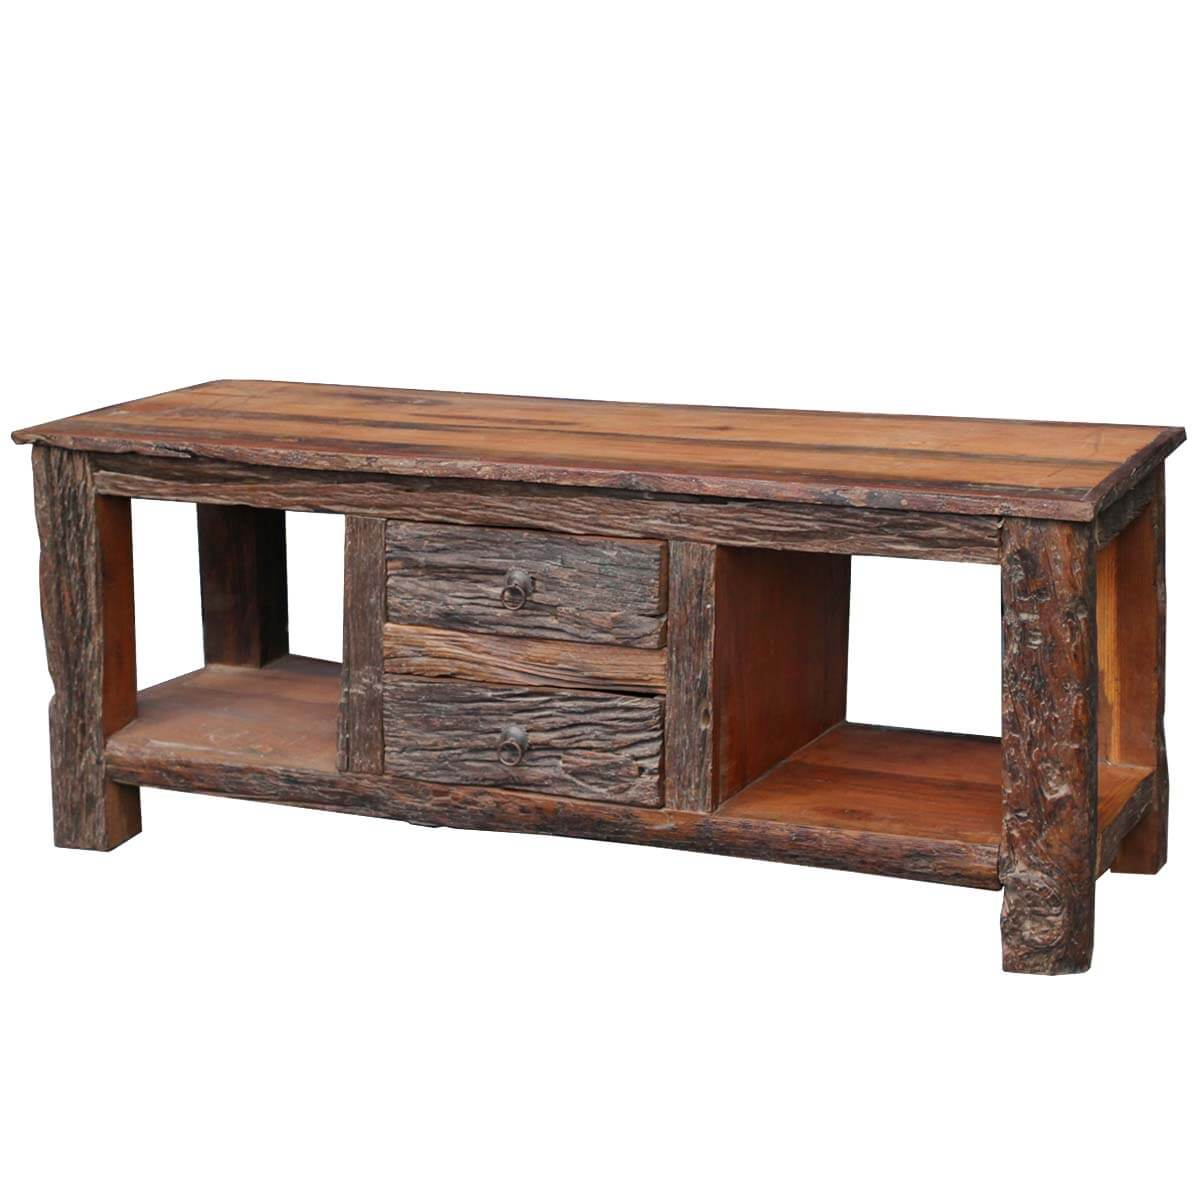 Rustic bark railraod reclaimed wood media stand console table